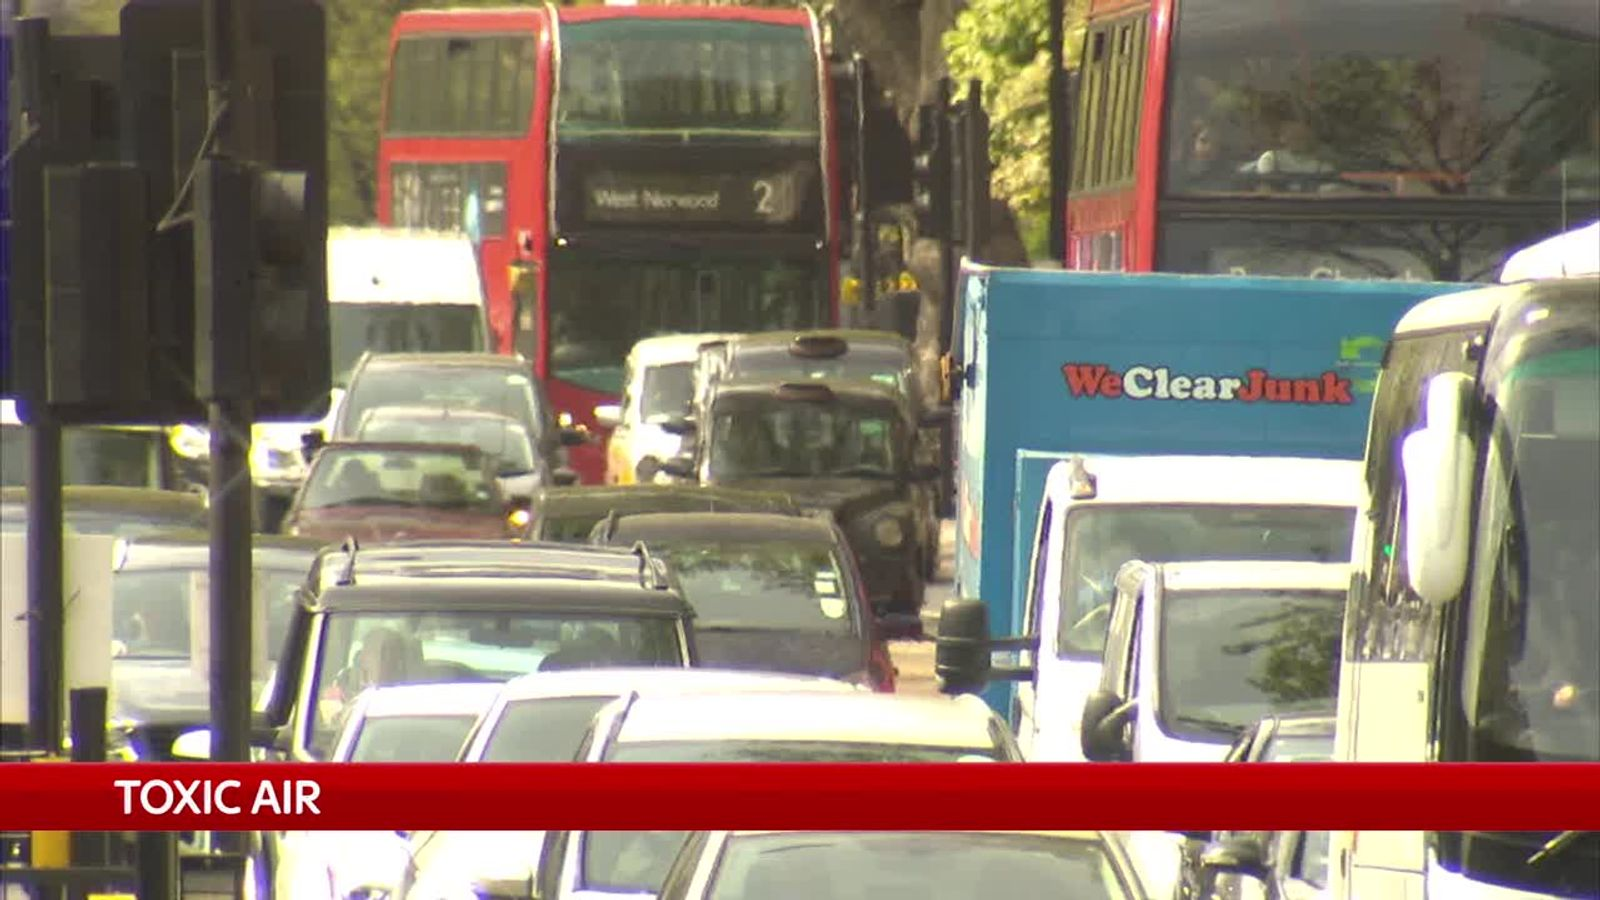 Government may face legal action over delay to air pollution plan